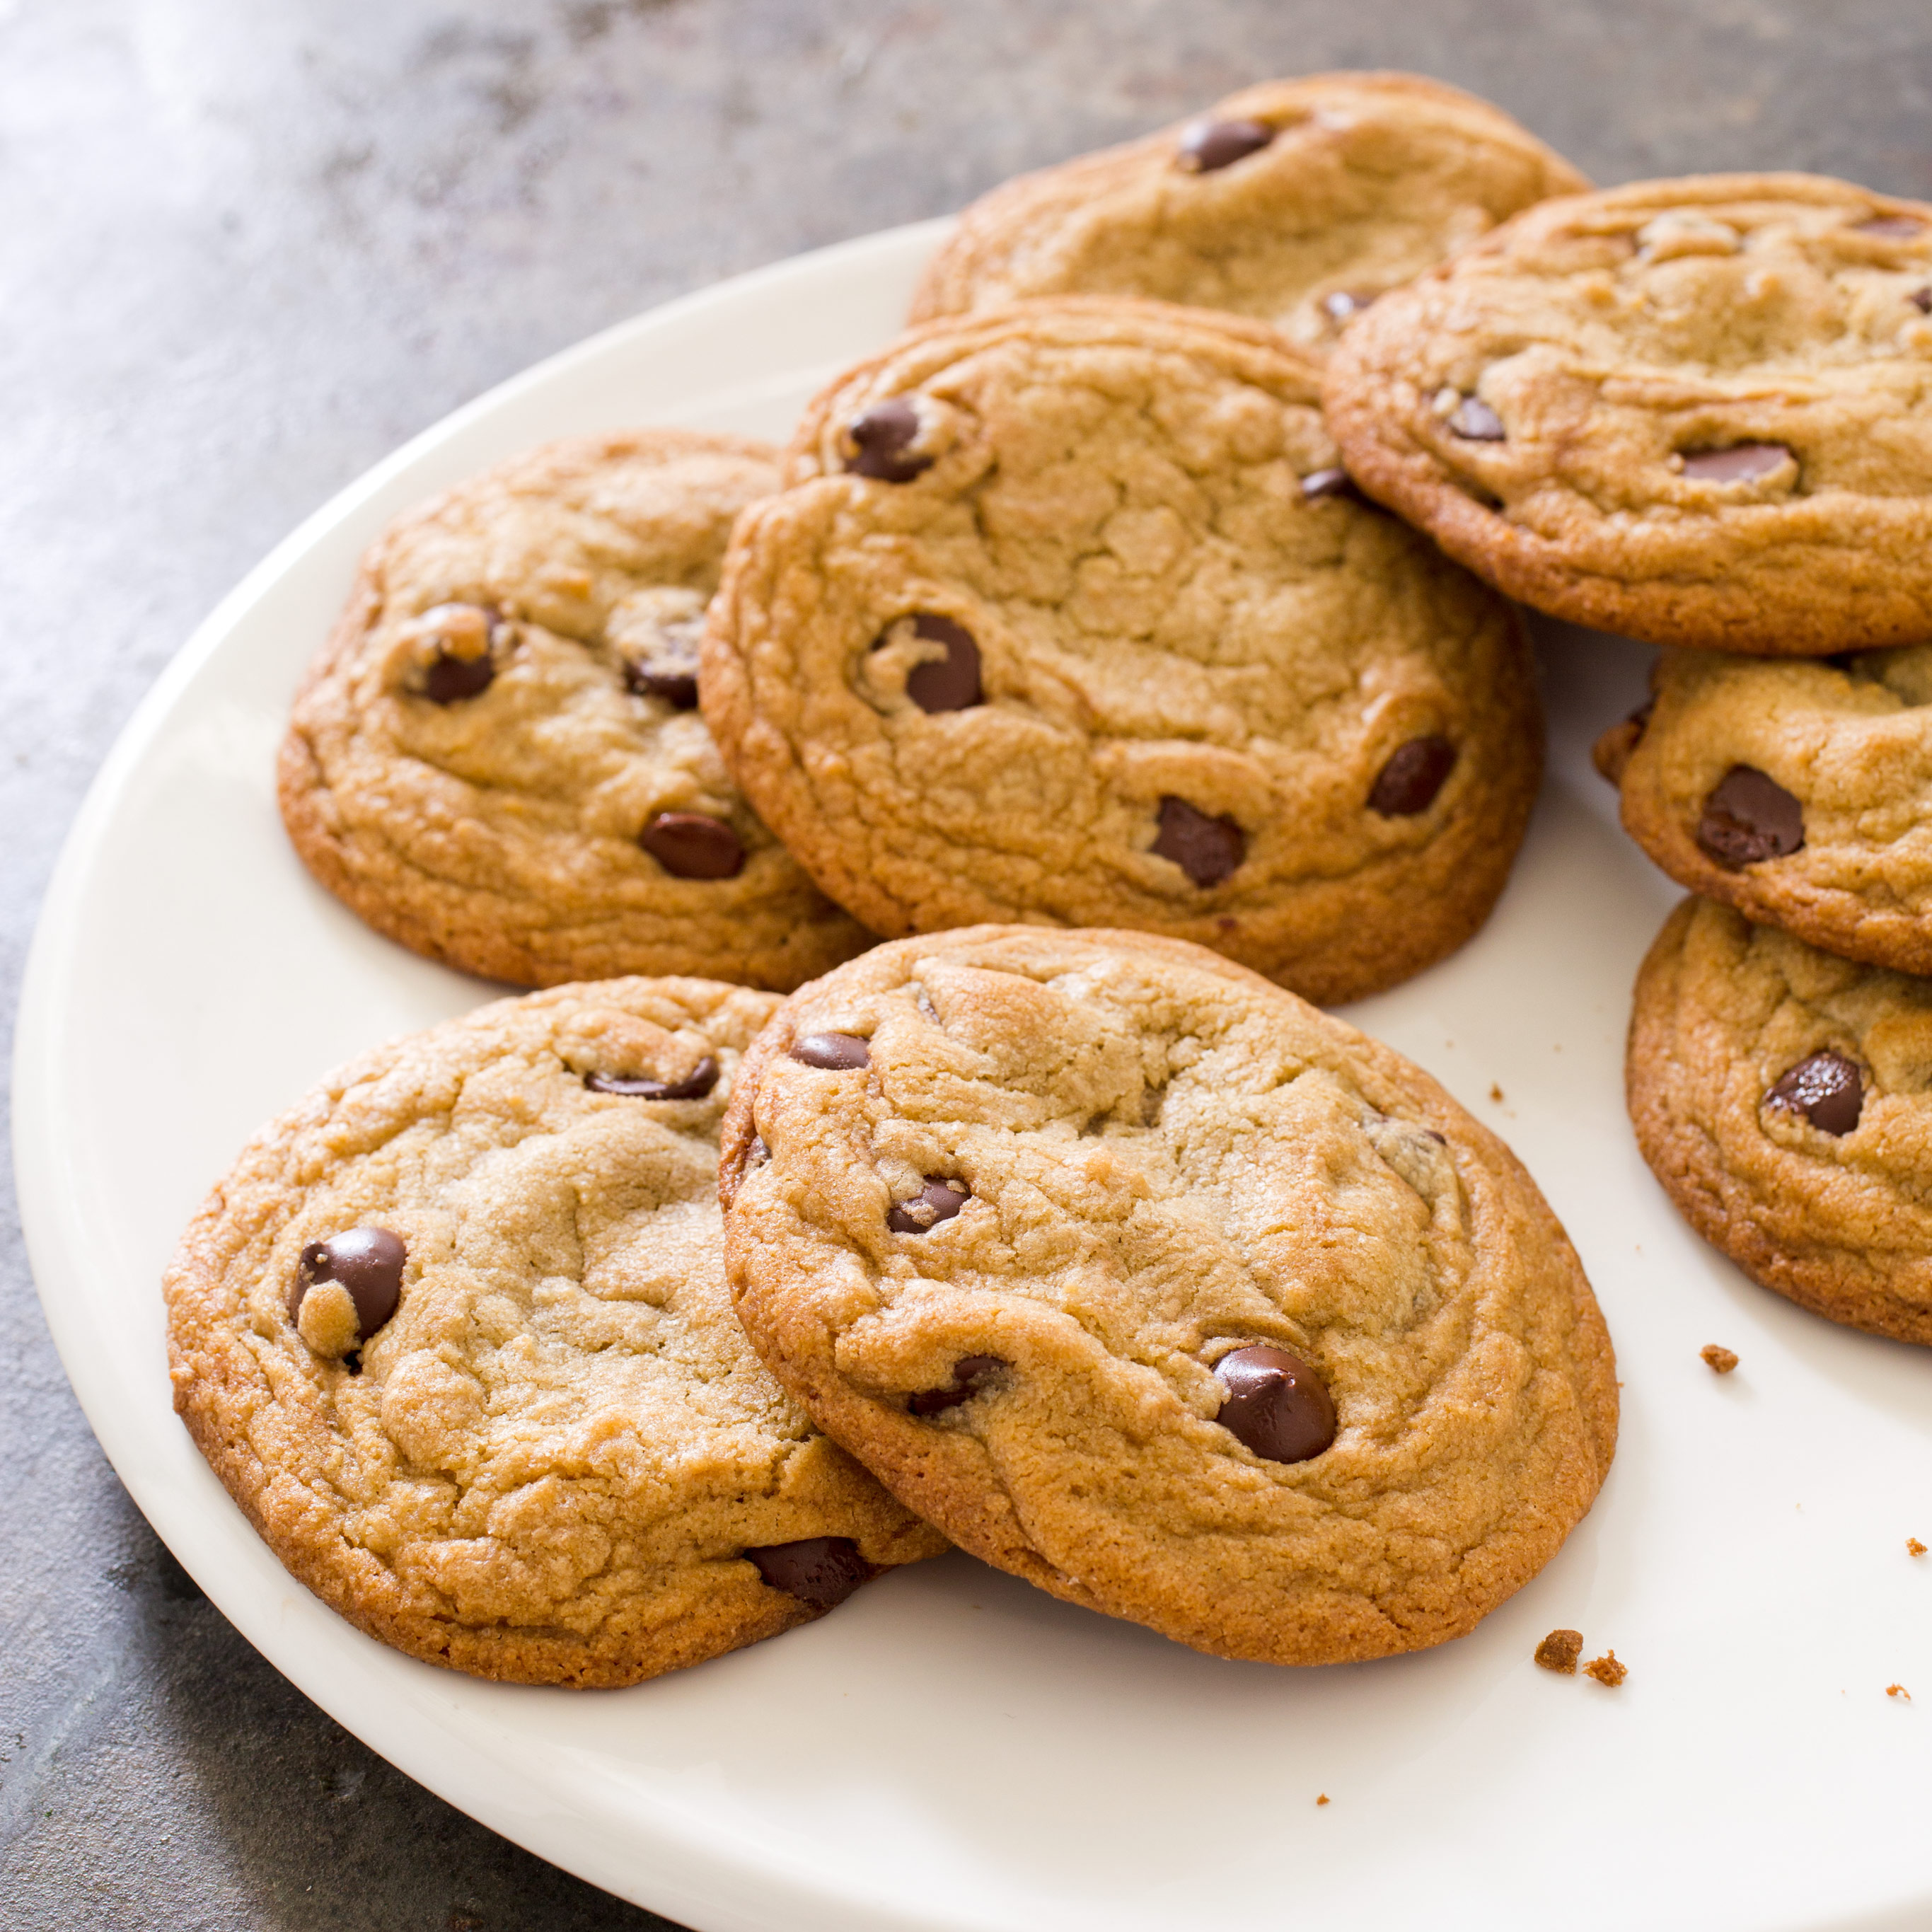 Chocolate Callets versus Chocolate Chips | Cook's Illustrated